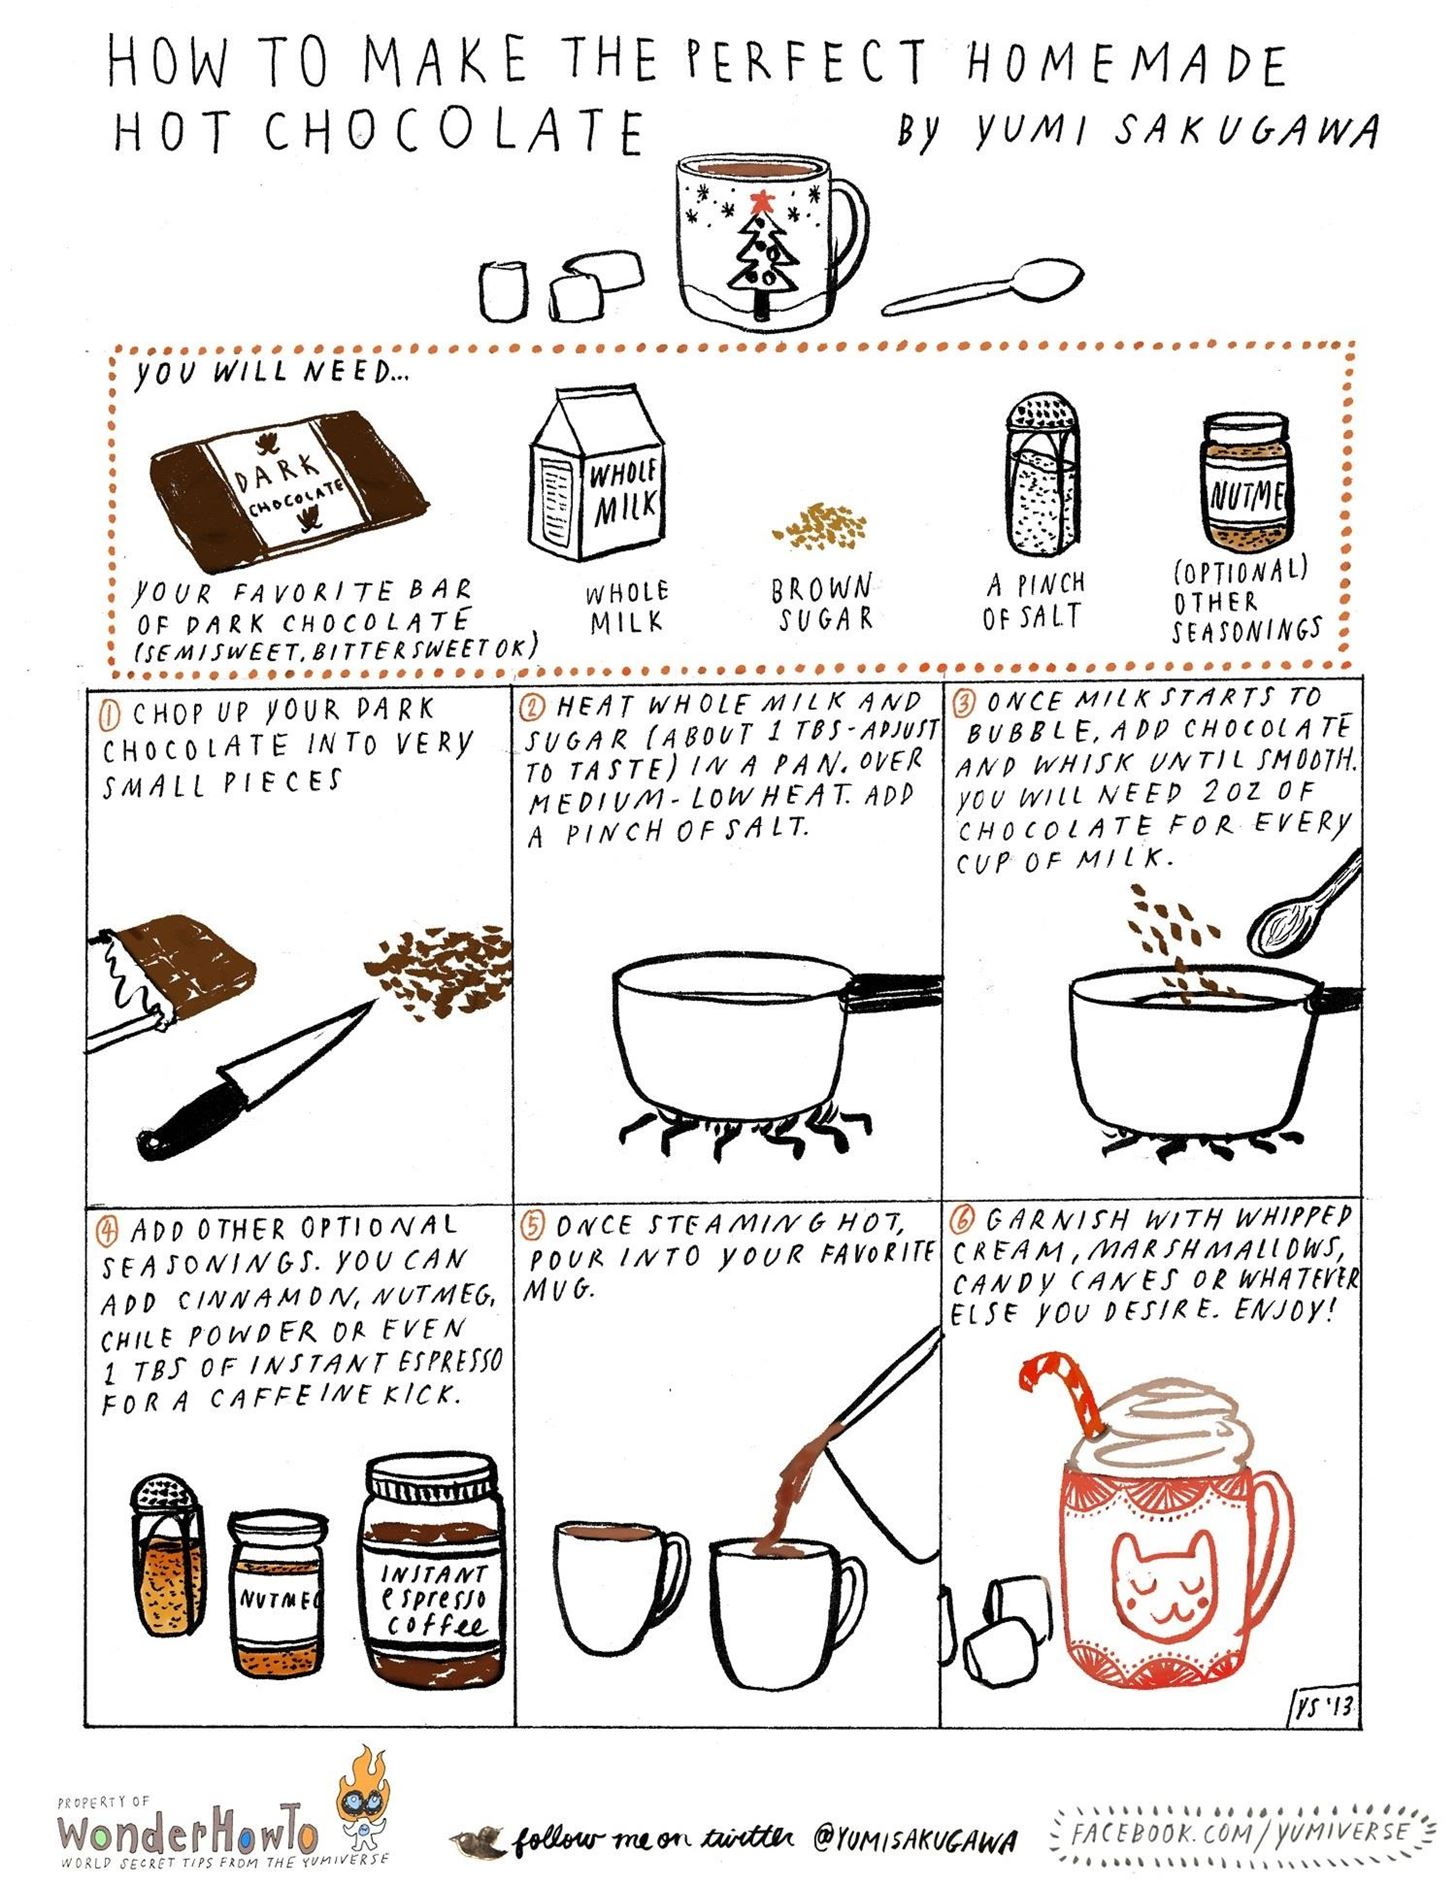 How To Make The Perfect Cup Of Hot Chocolate Using Real